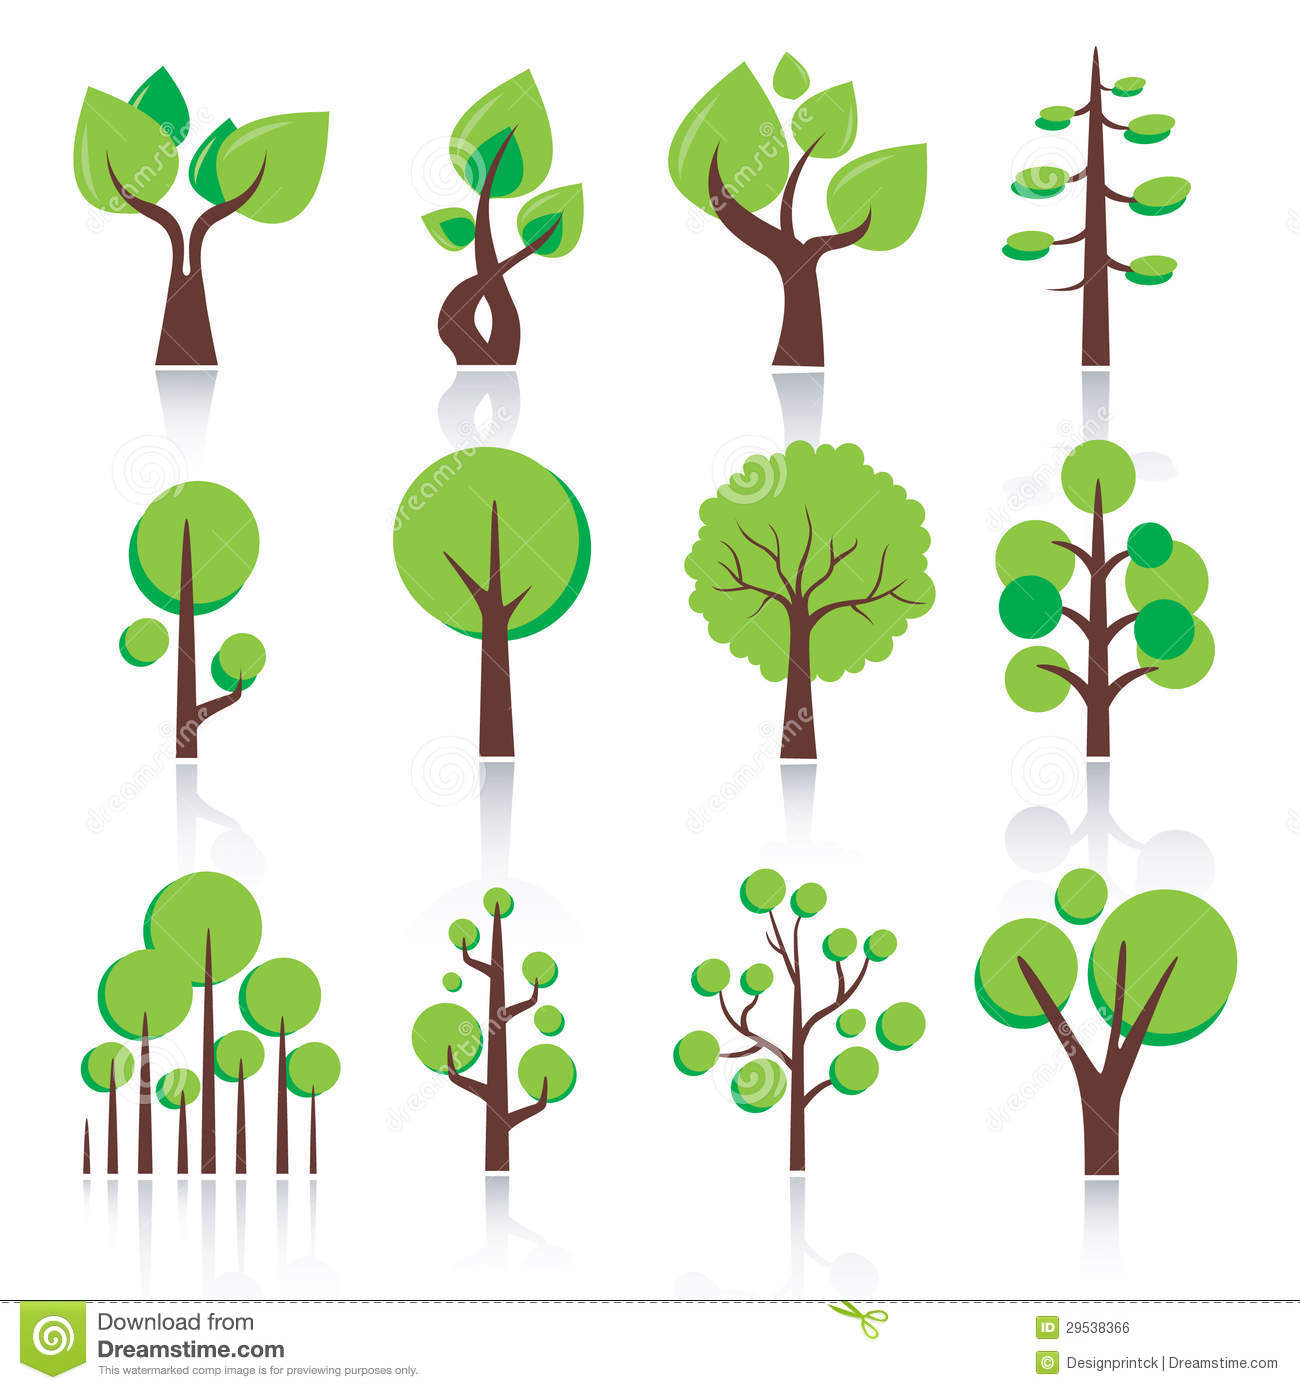 simple tree icon stock vector illustration of growth vector flourishes free download vector flourish frame